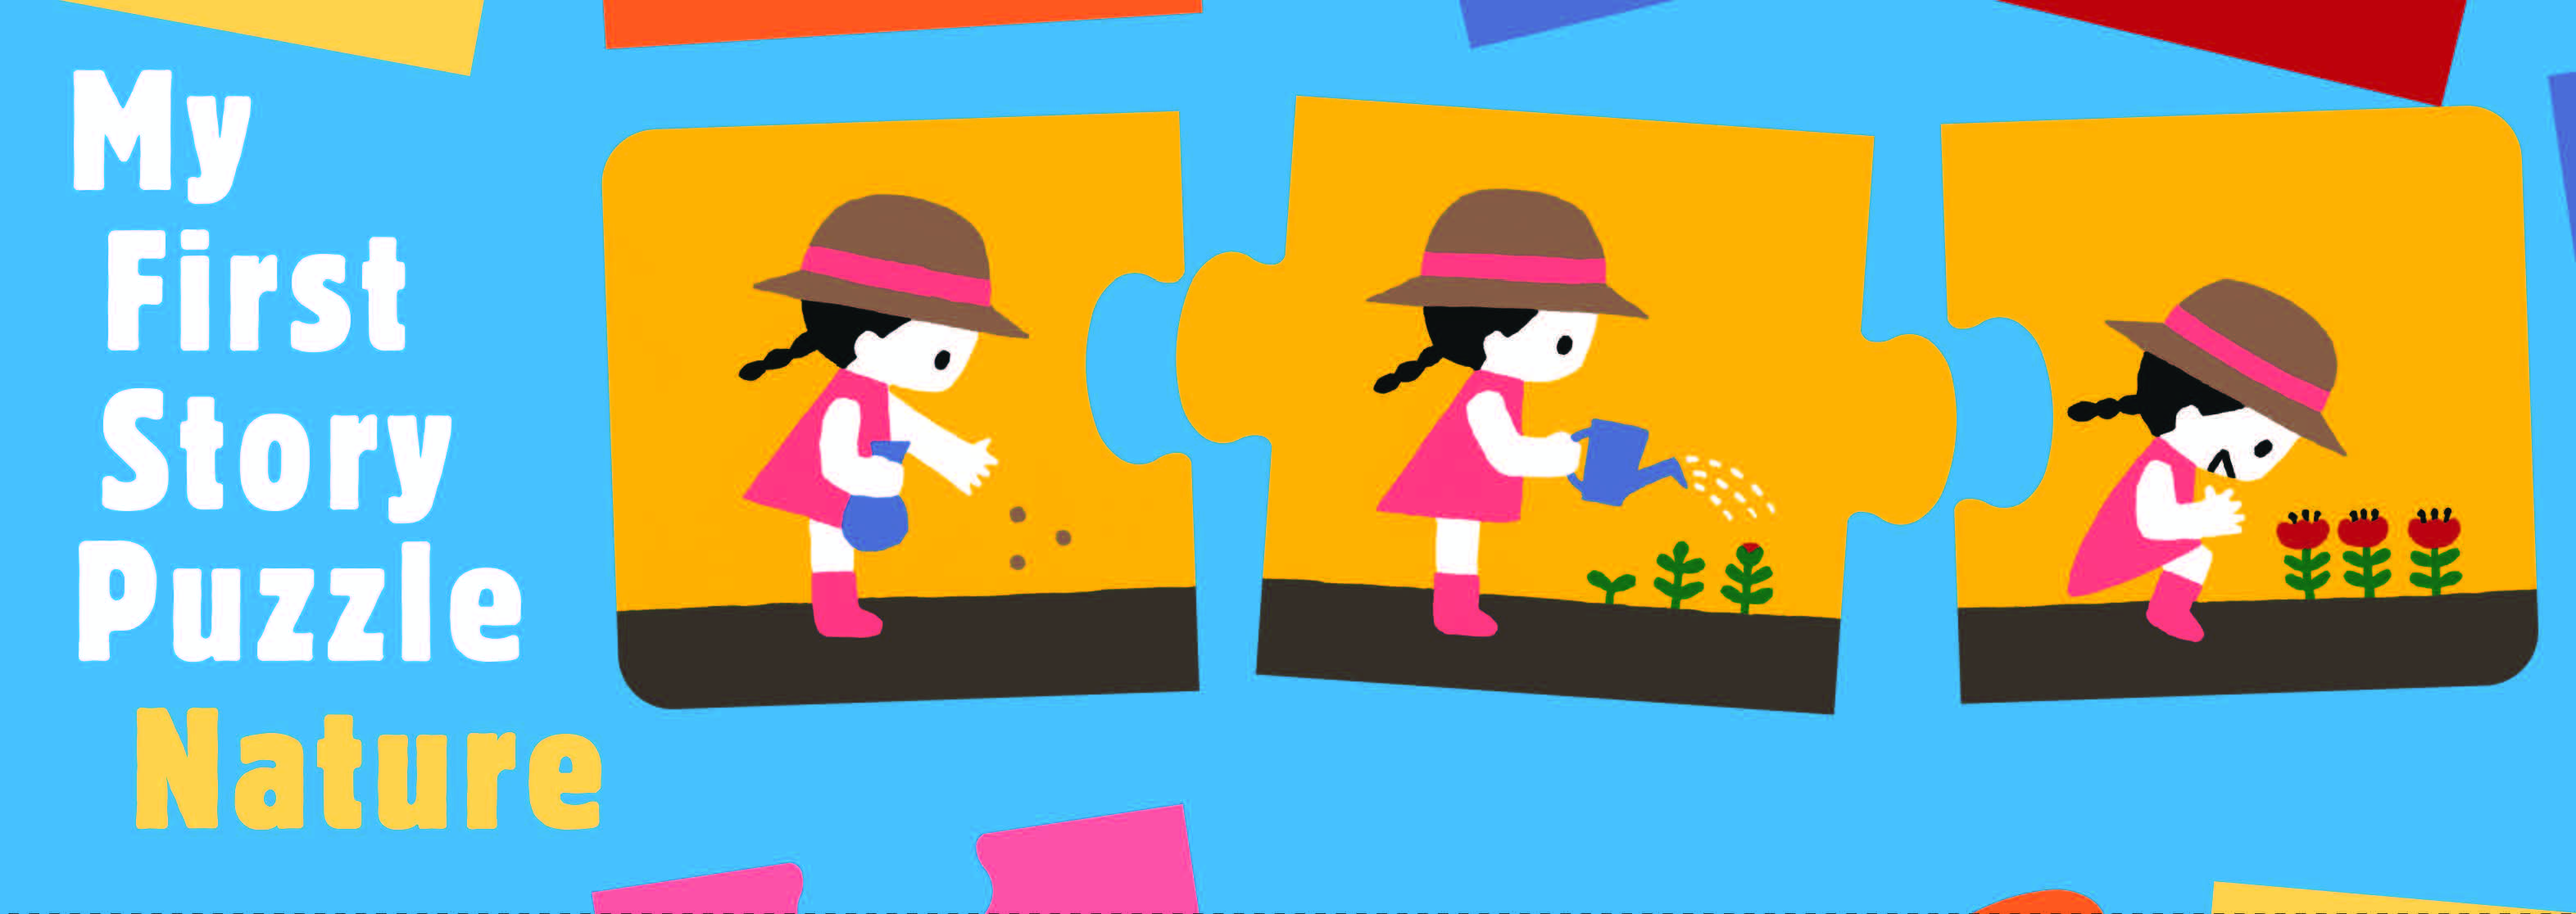 My First Story Puzzle: Nature - Product Thumbnail